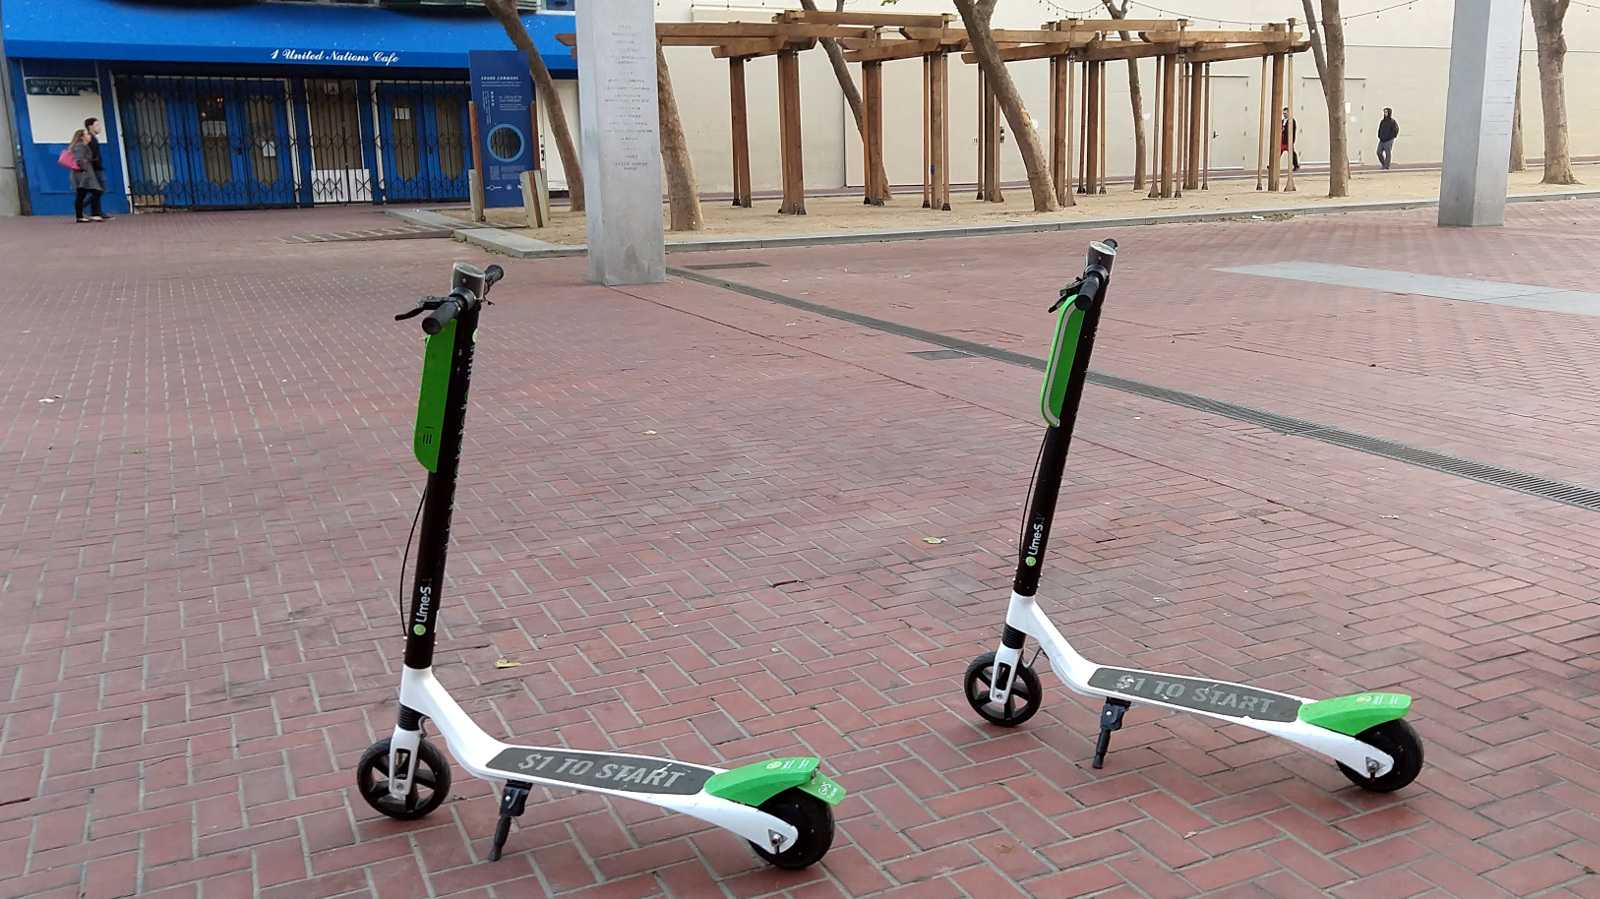 2 abgestellte Lime-Scooter